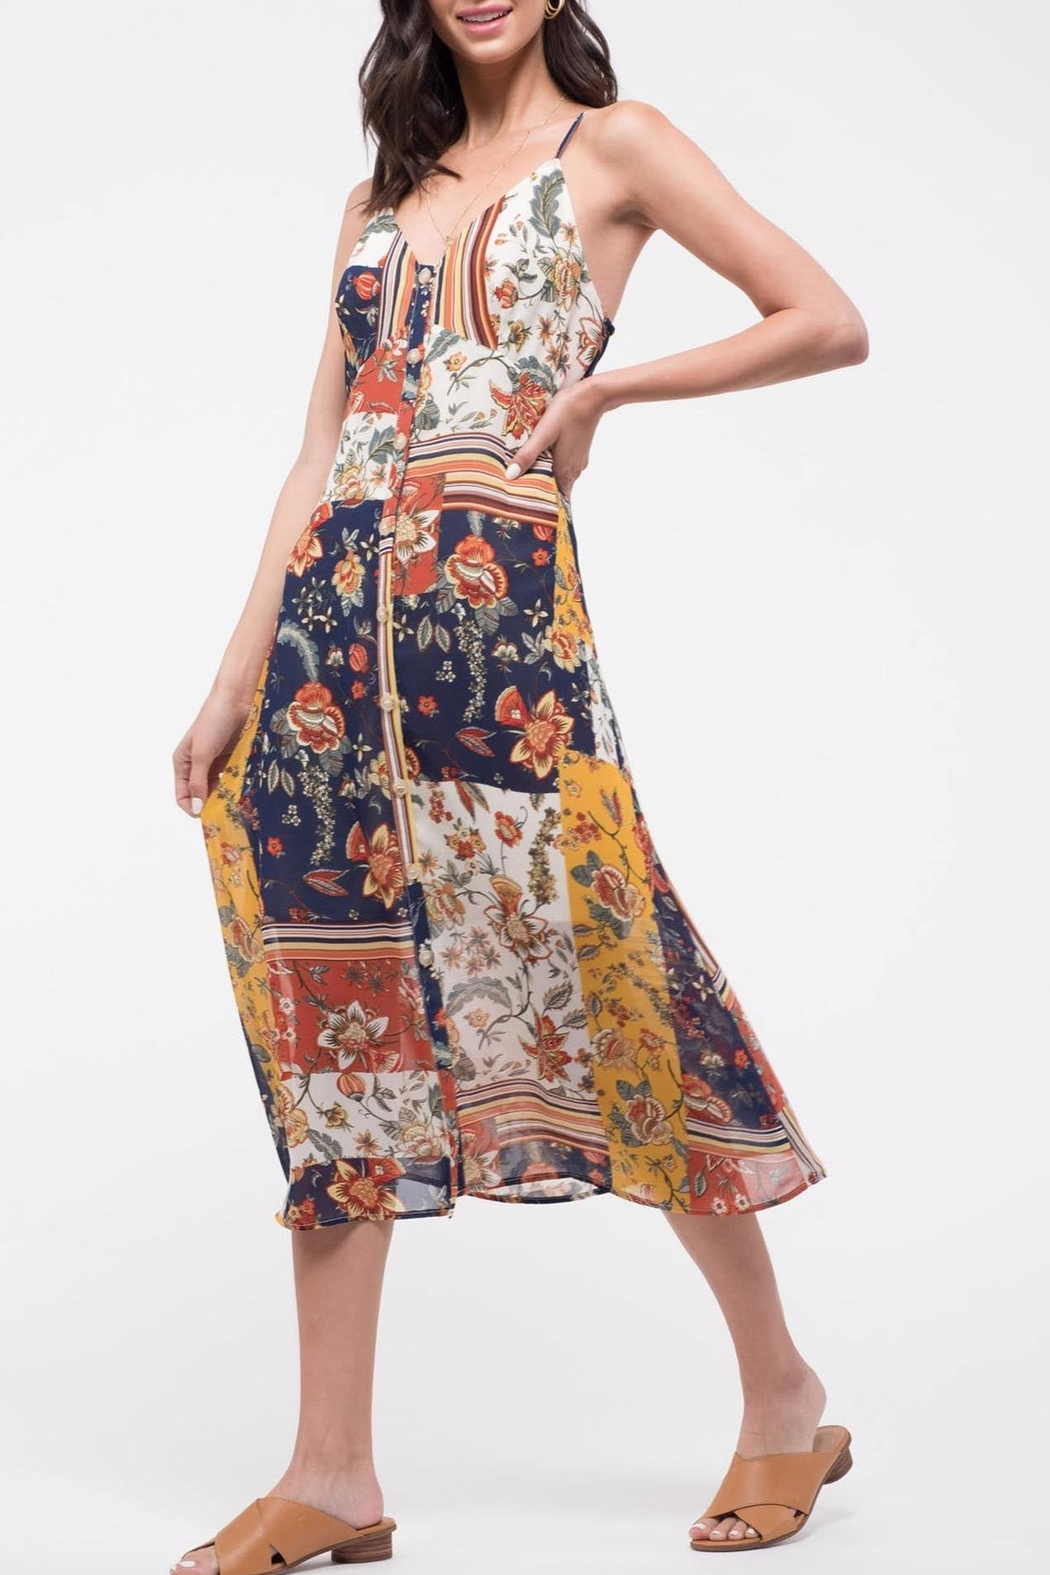 Blu Pepper Patchwork Floral Dress - Main Image